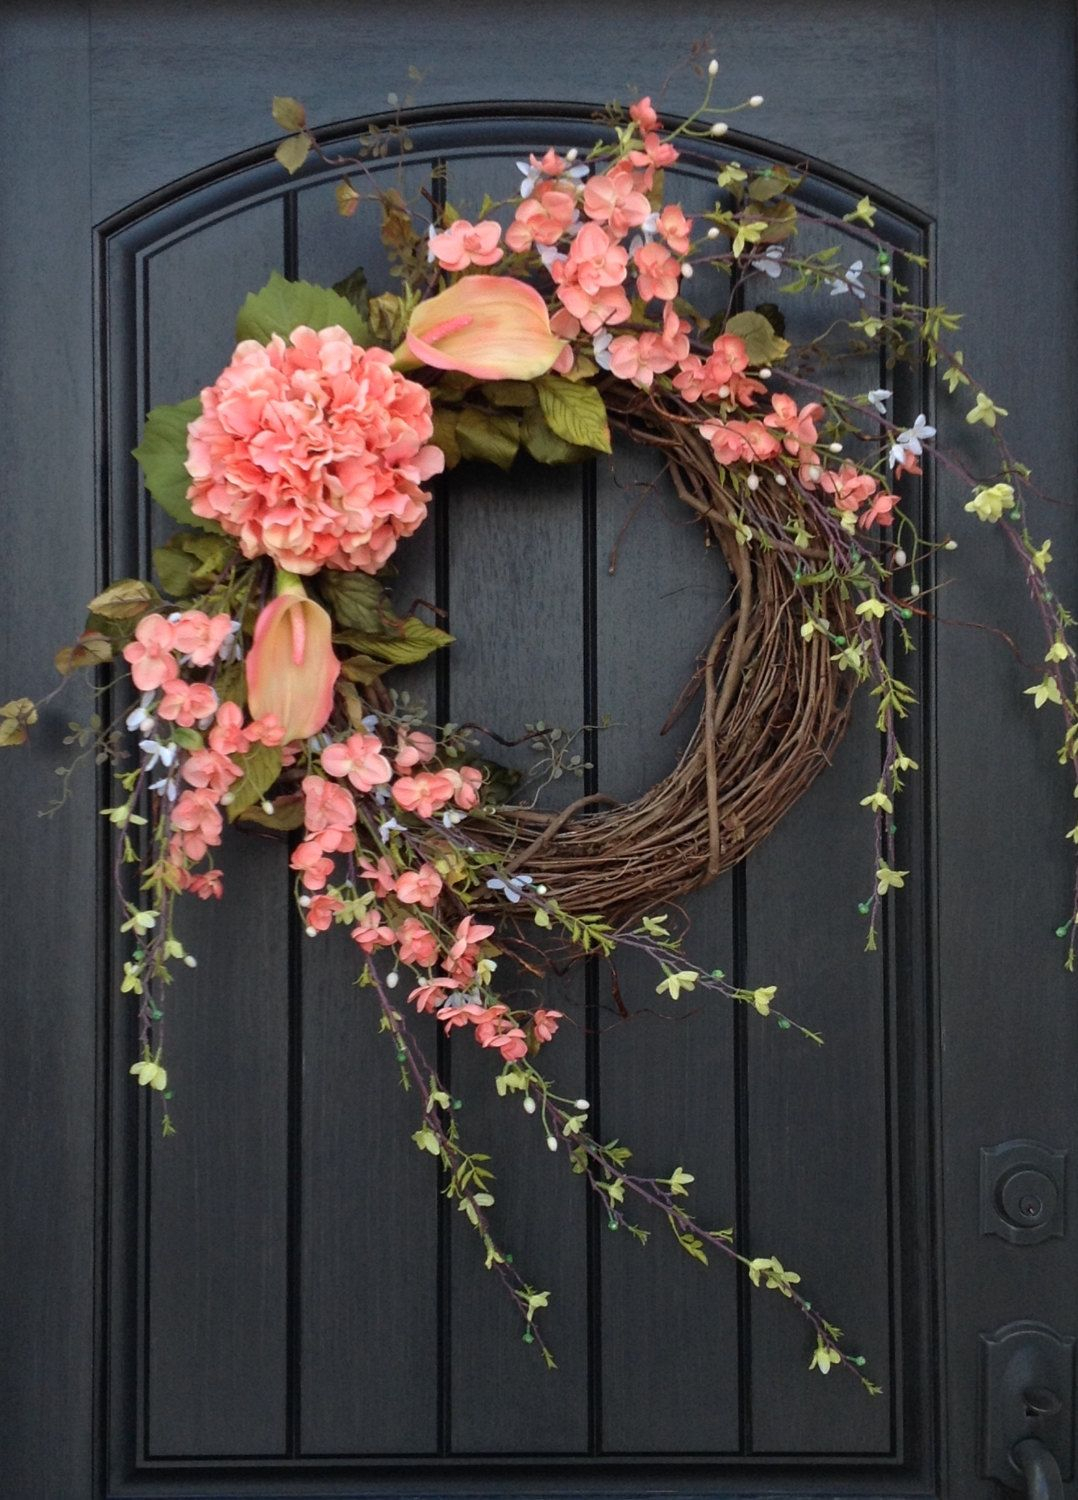 Spring Wreath Summer Wreath Floral White Green Branches Door Wreath Intended For Preferred Floral Patterned Over The Door Wall Decor (Gallery 9 of 20)